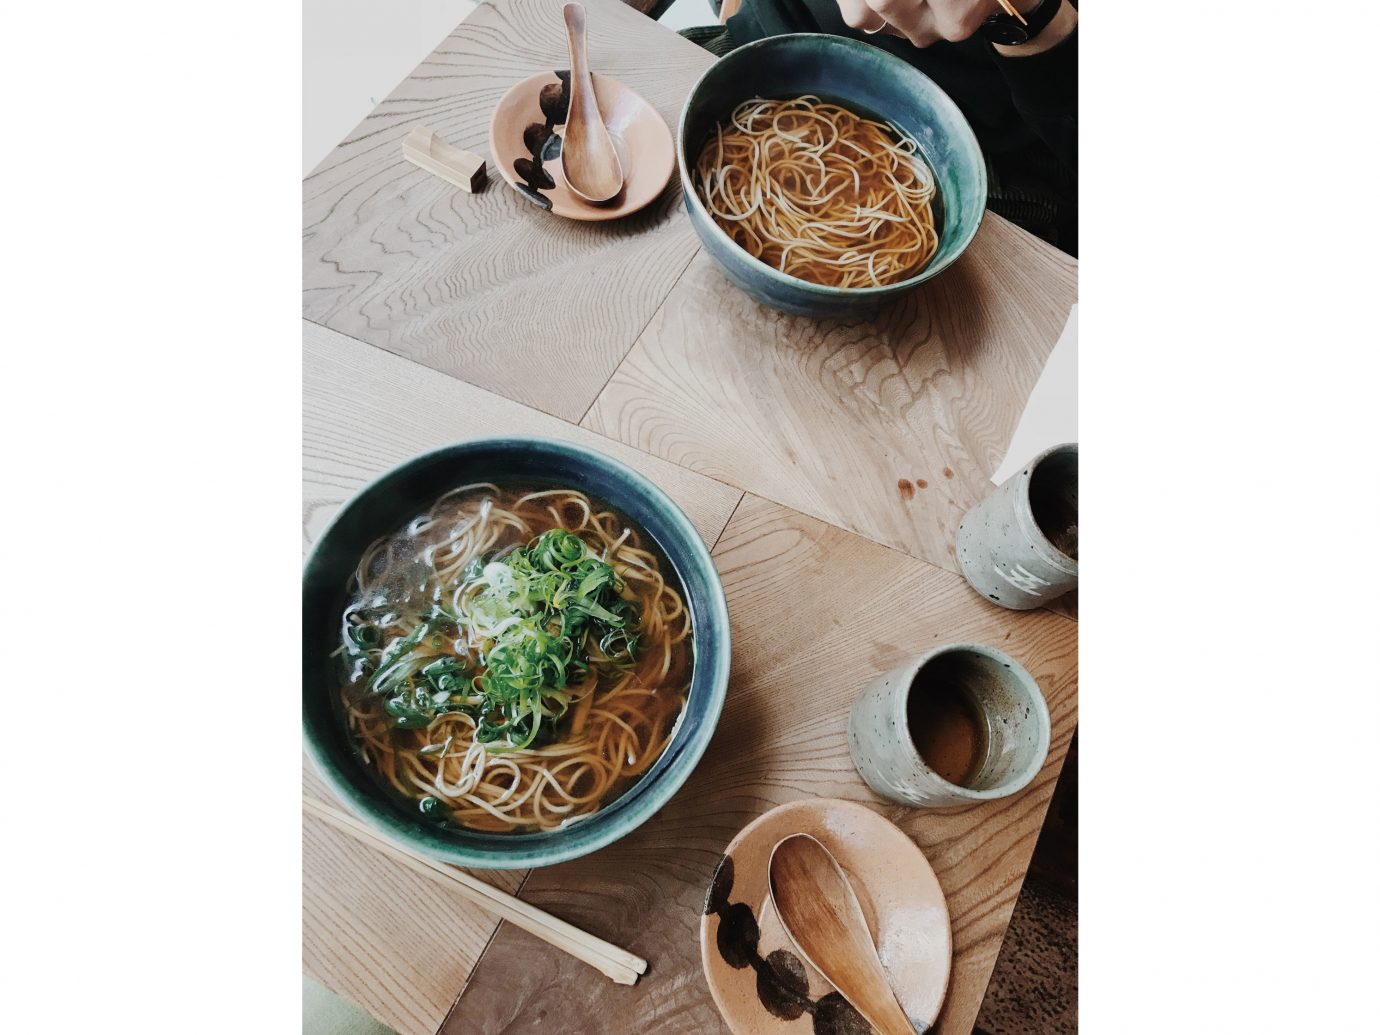 Influencers + Tastemakers Japan Photo Diary Tokyo food dish tableware cuisine ingredient different recipe soba vegetarian food asian food meal